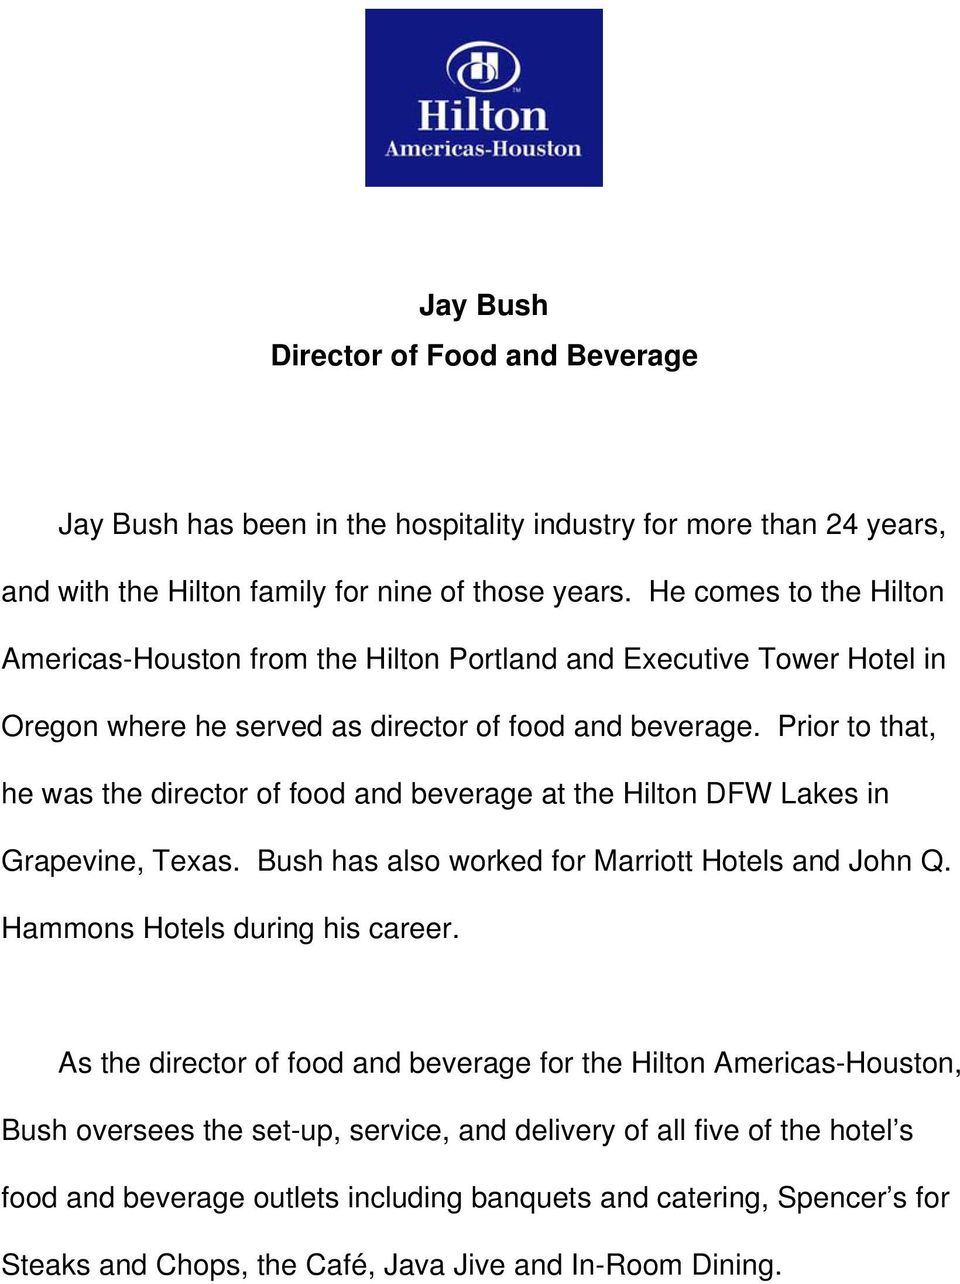 Prior to that, he was the director of food and beverage at the Hilton DFW Lakes in Grapevine, Texas. Bush has also worked for Marriott Hotels and John Q. Hammons Hotels during his career.